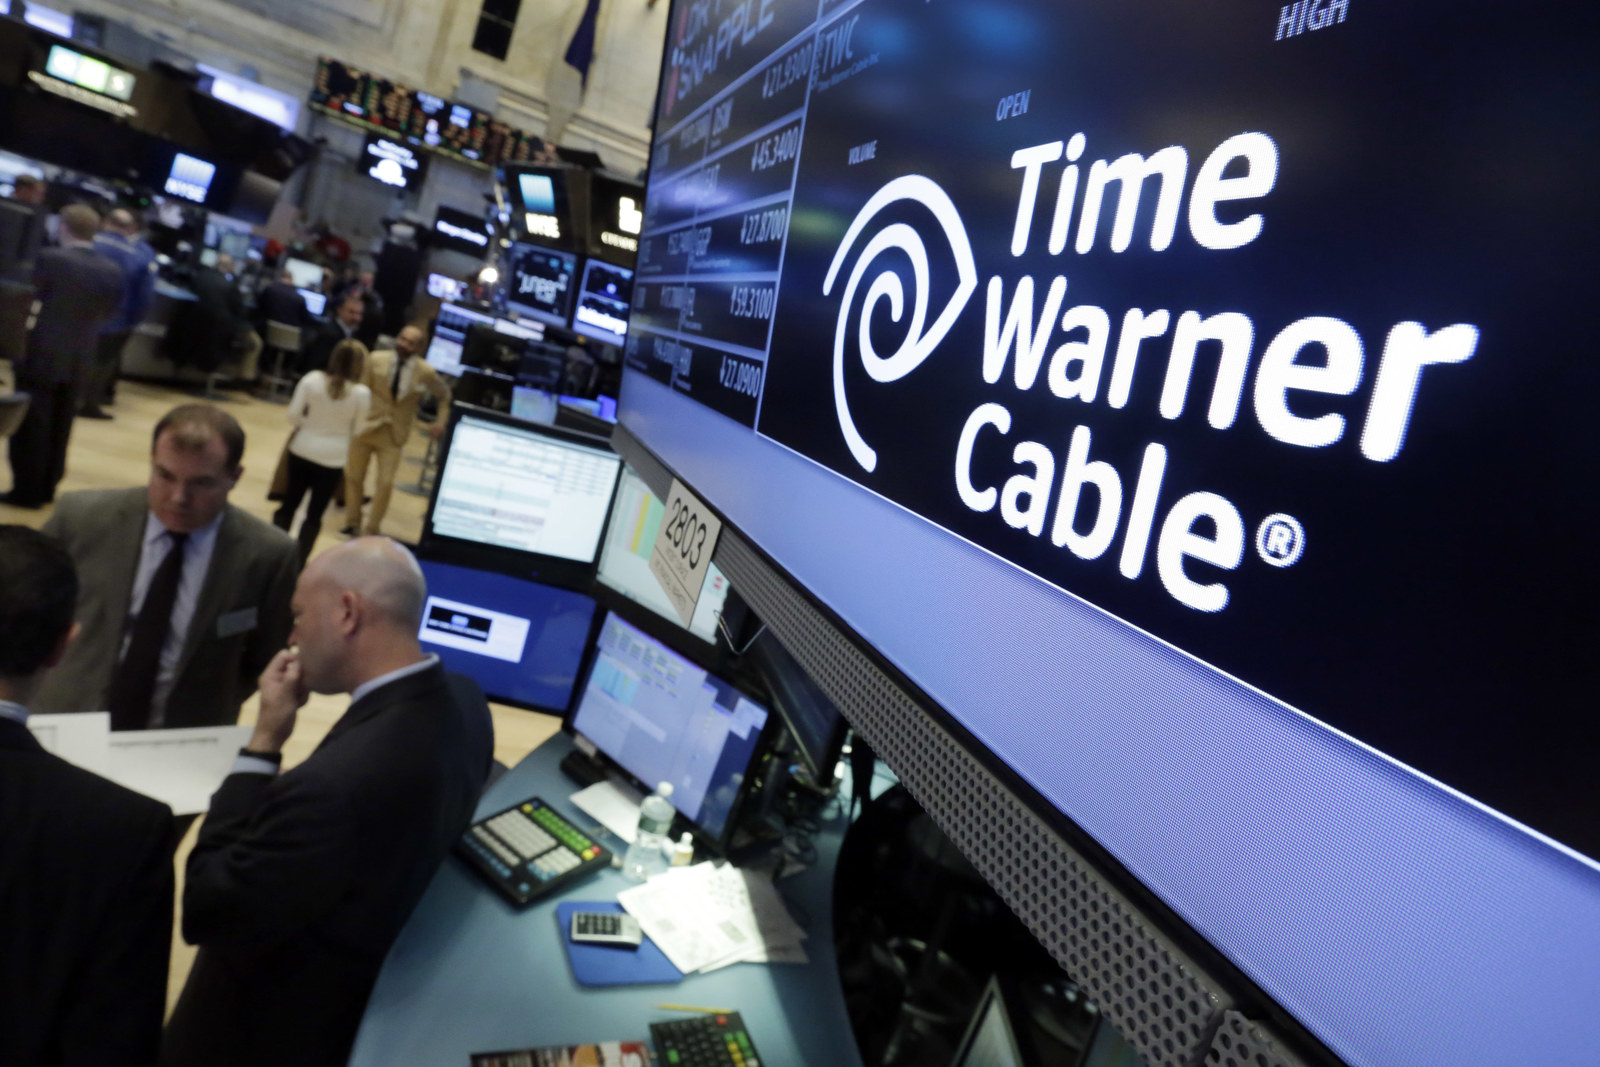 sub buzz 18554 1485966036 10?downsize=715 *&output format=auto&output quality=auto time warner allegedly charged 5 million people for internet speeds Cable TV Wiring Diagram at bayanpartner.co